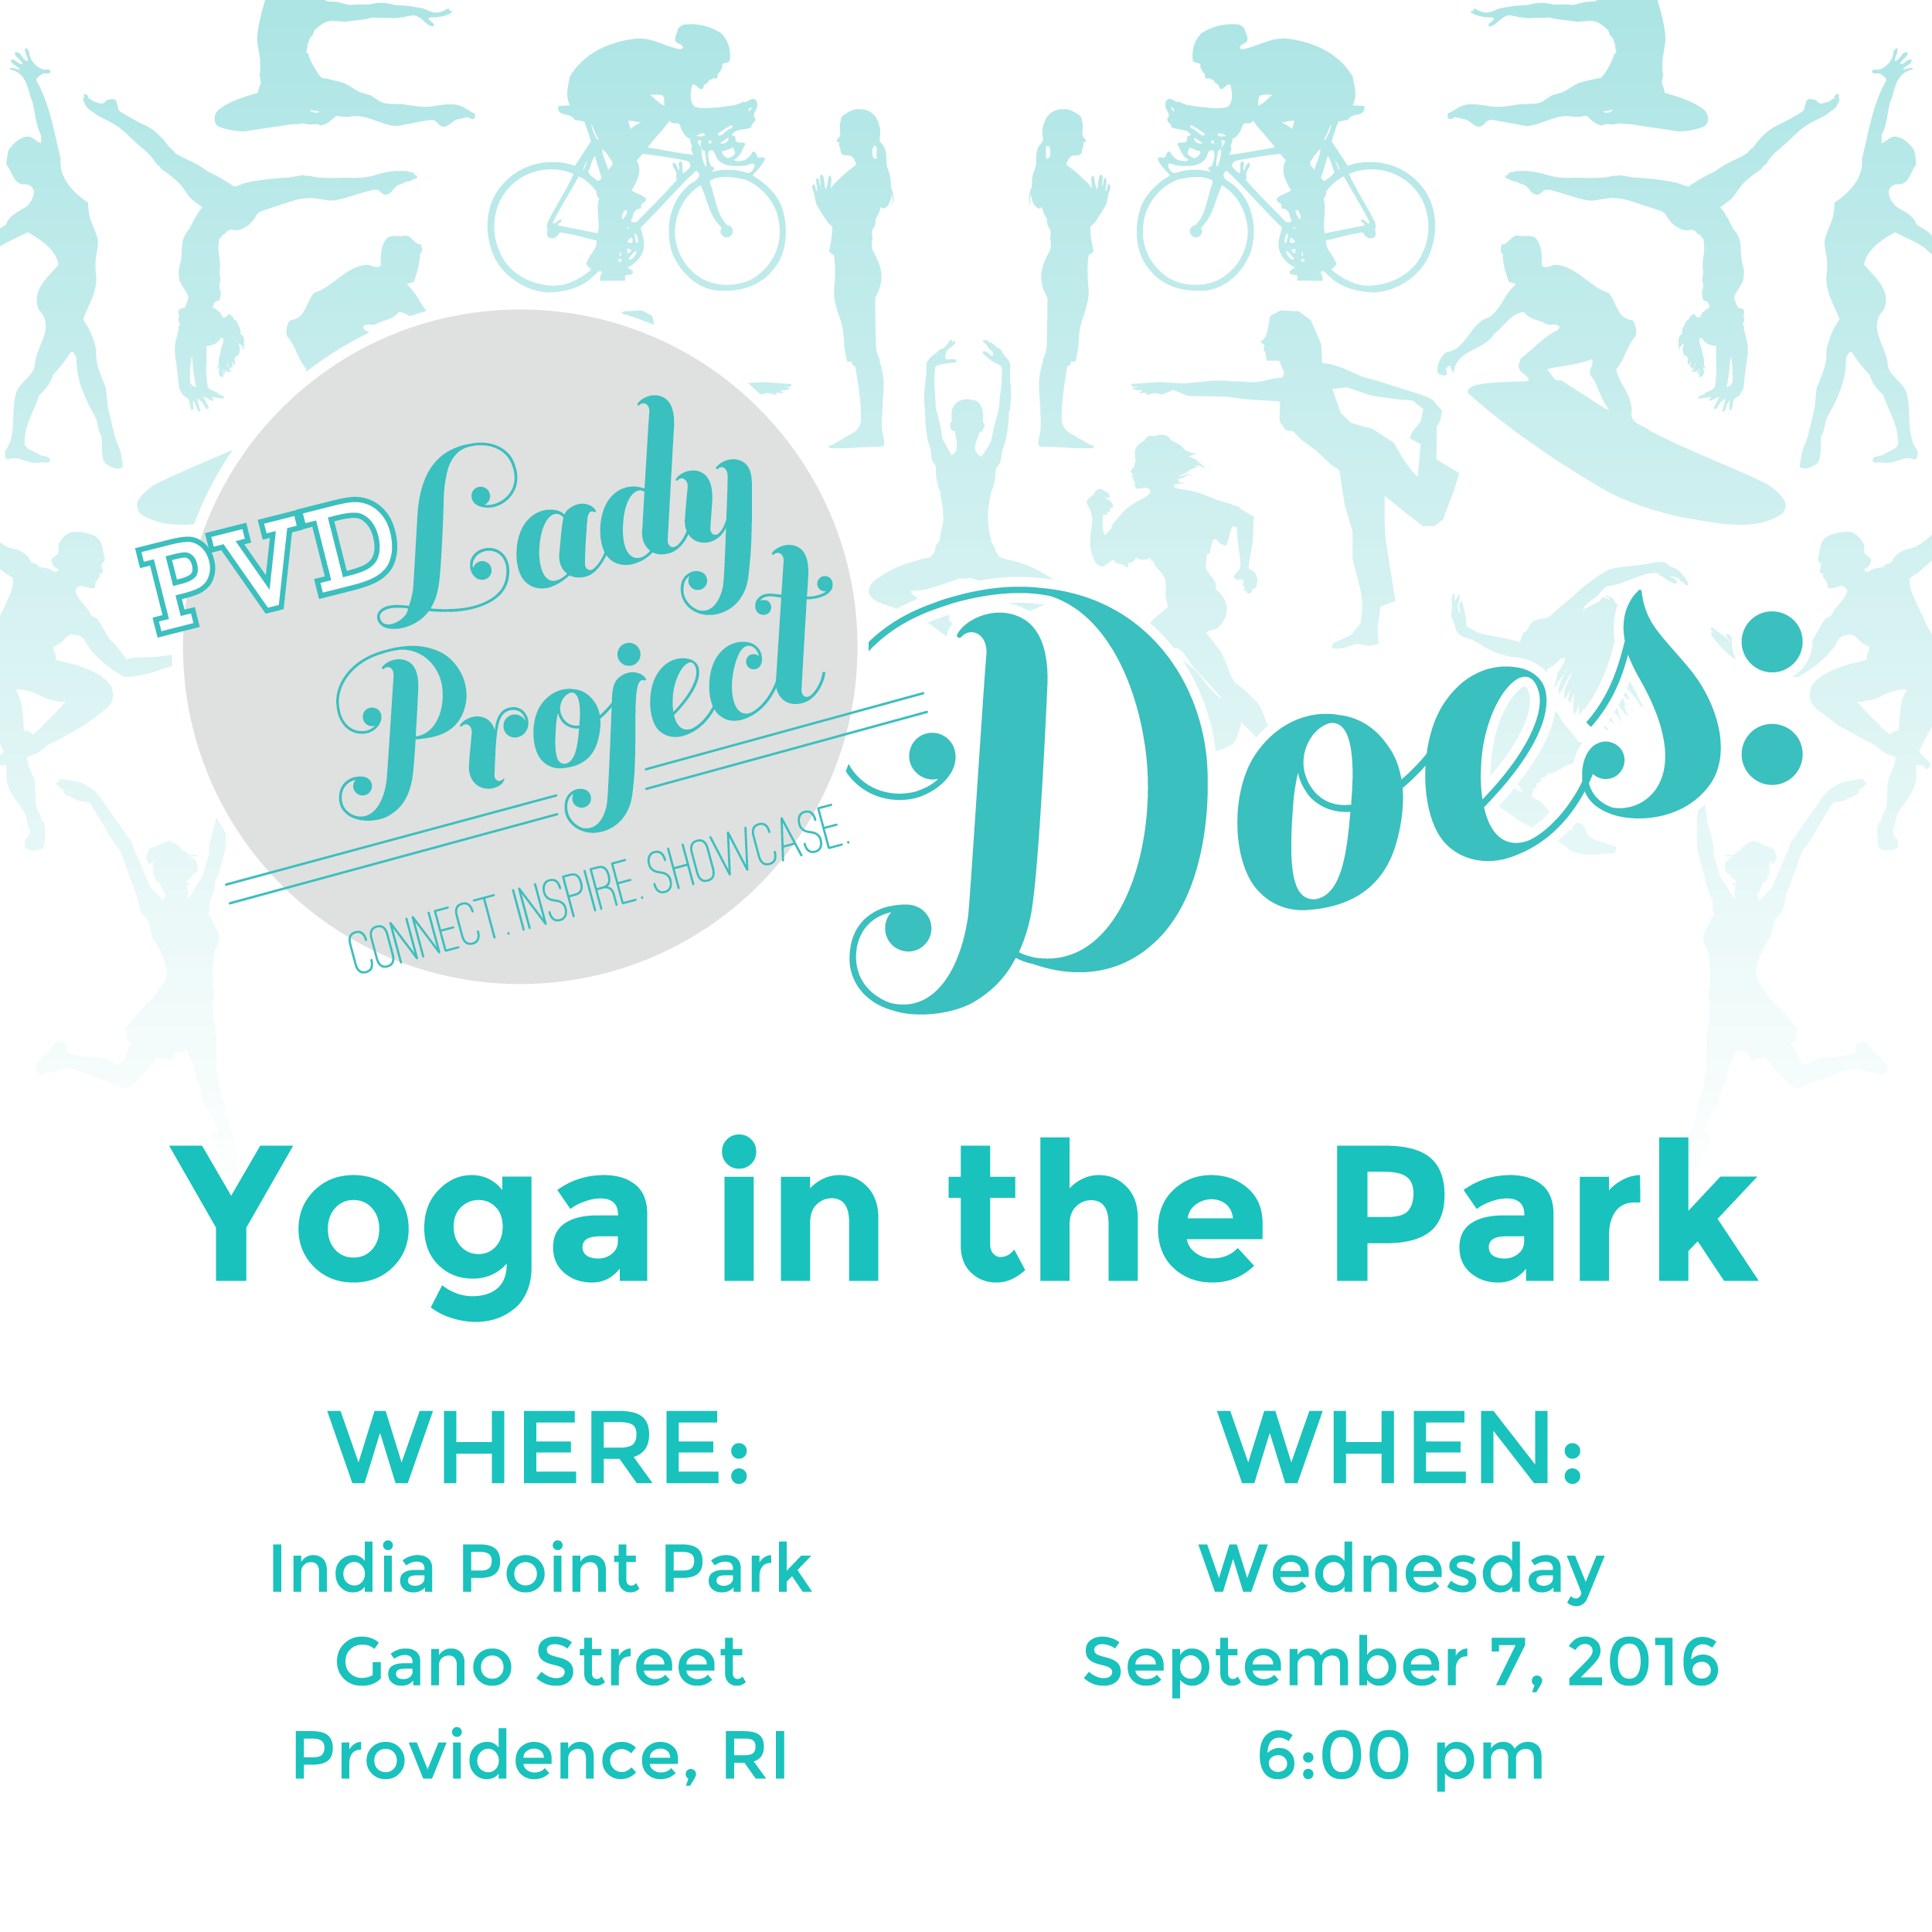 PVD Does Yoga in the Park